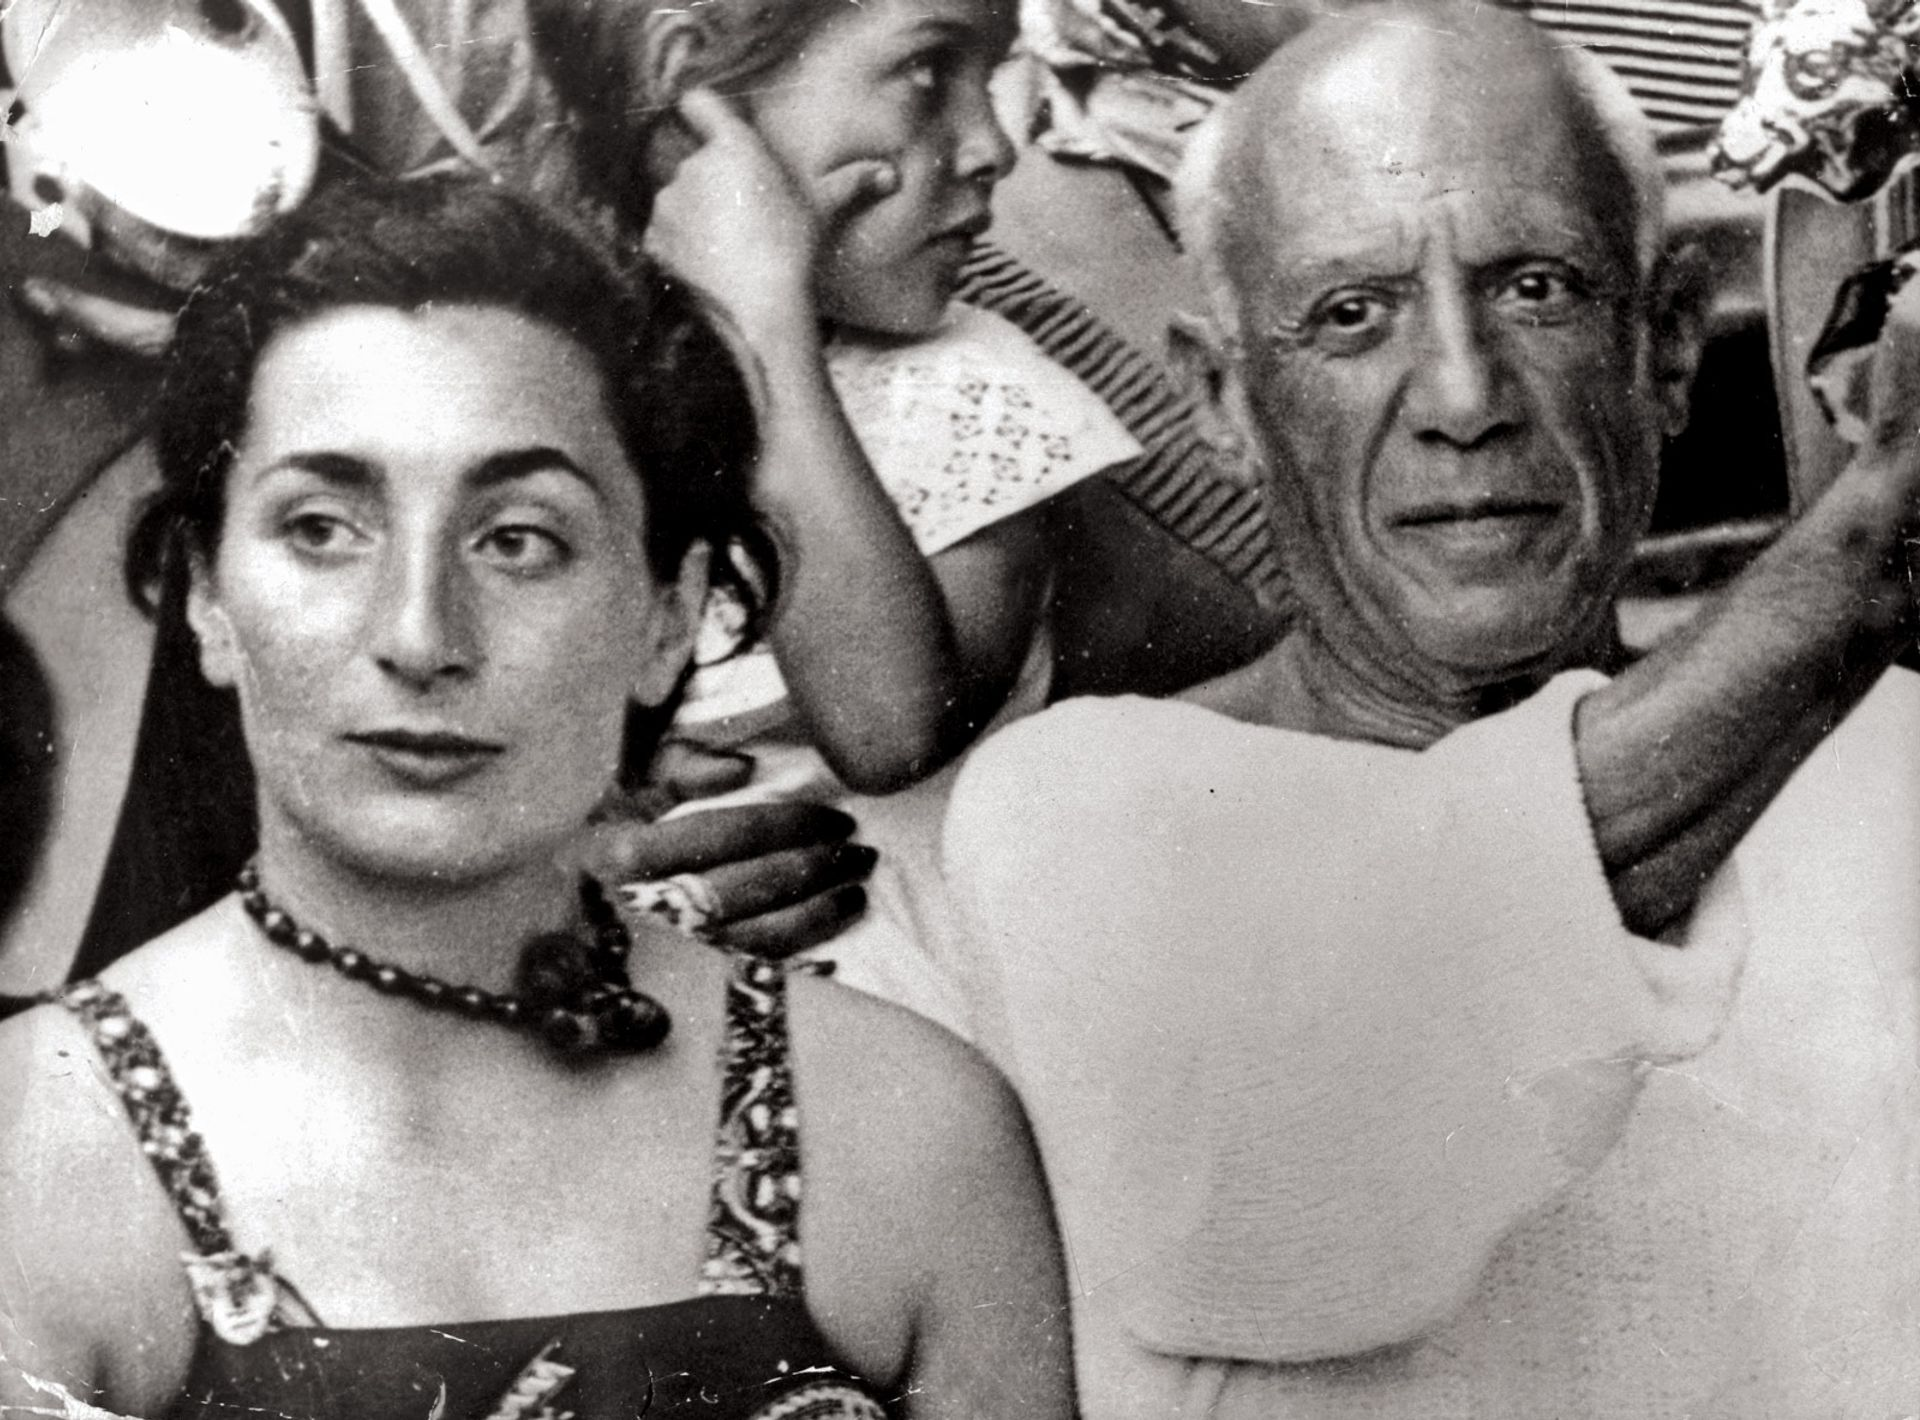 Pablo Picasso with Jacqueline, his wife and muse, in 1955 Keystone Pictures/Alamy